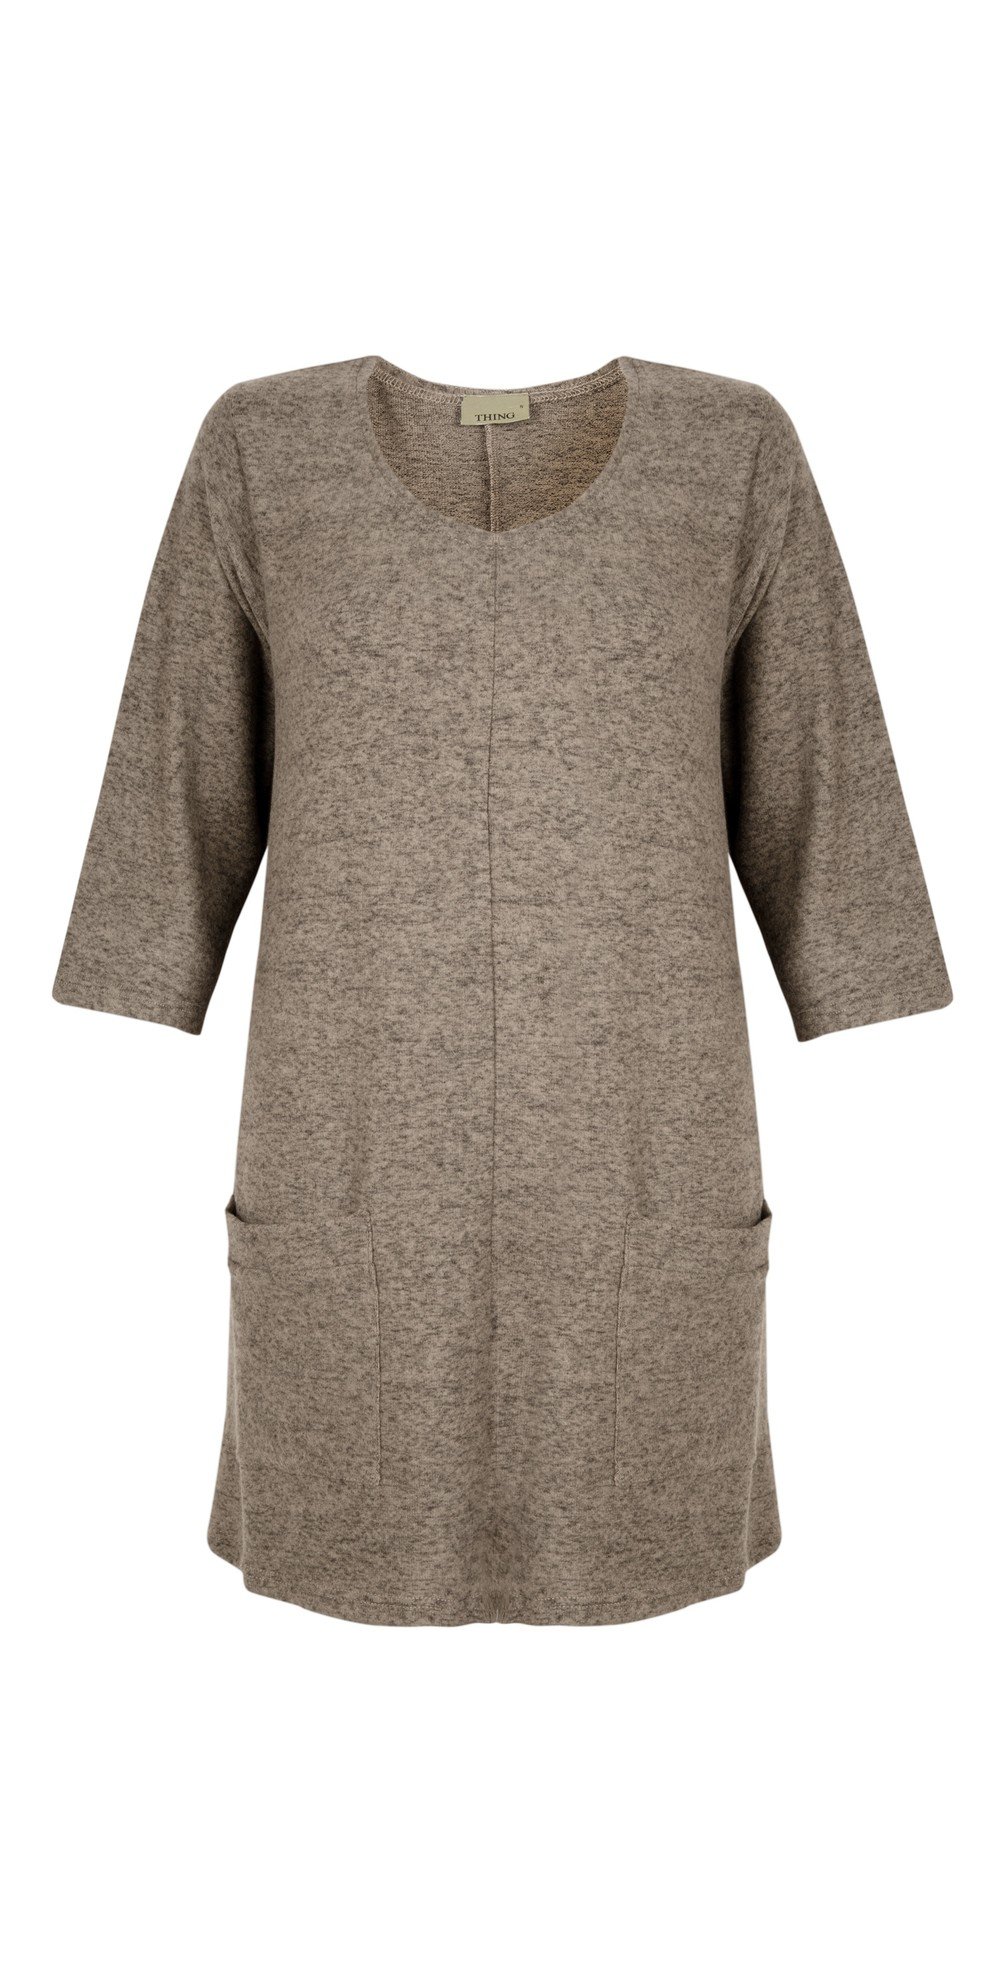 Supersoft Fleece Pocket Tunic Top main image